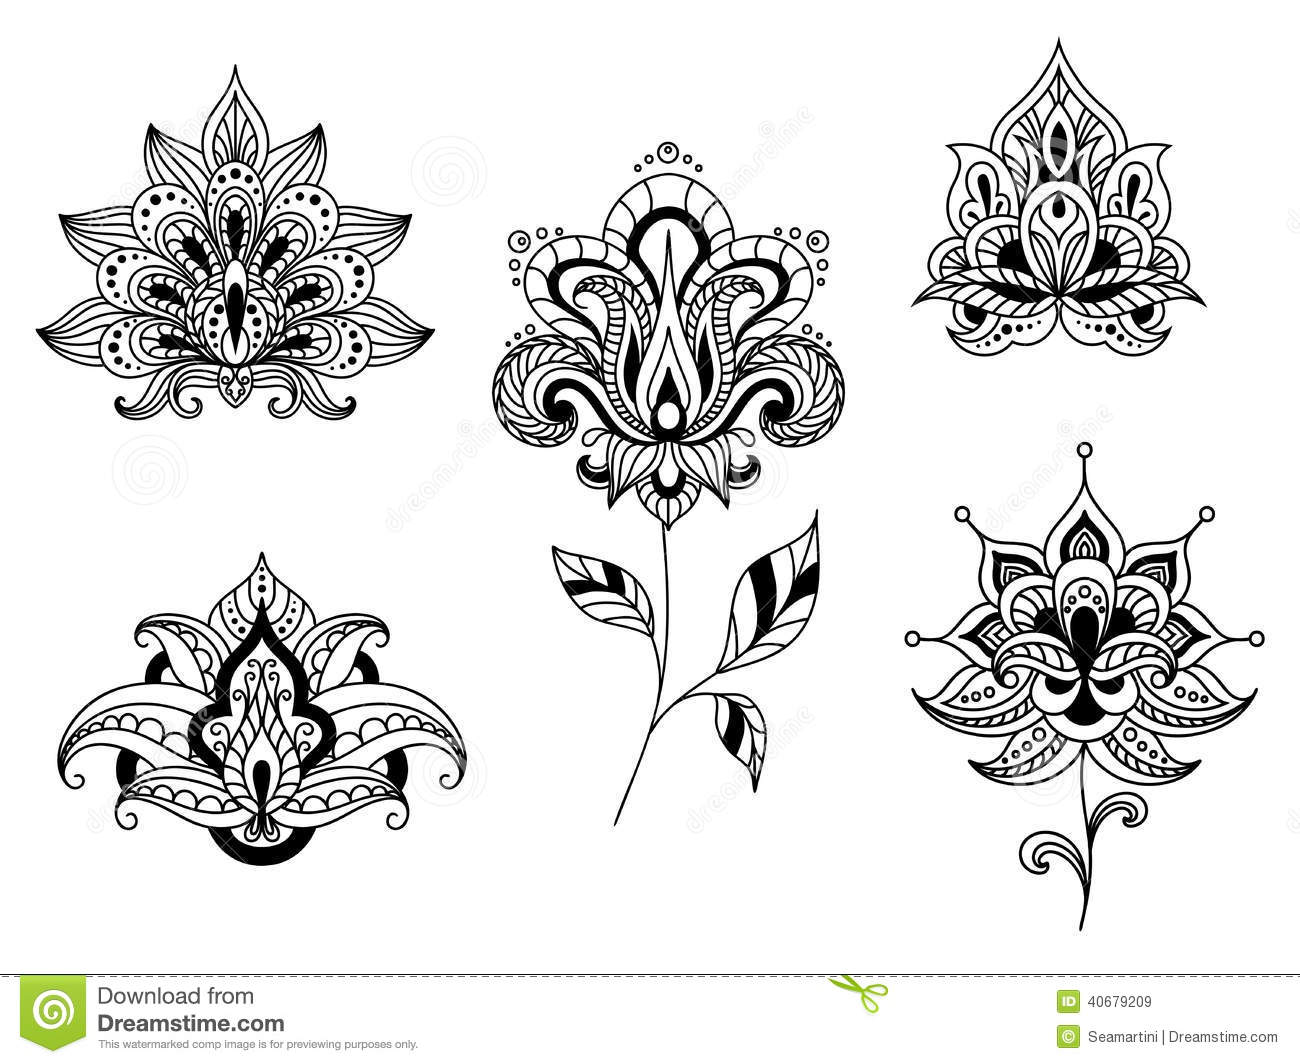 Royalty Free Stock Images Black White Floral Motifs Persian Paisleys Ornate Calligraphic Line Format Use As Design Elements Isolated Image40679209 further Abstract arabesque geometric islamic Art ornament pattern symmetric icon further Honey b Texture 1 624072132 also Grids furthermore Abstract Segmented Geometric Circle Shape Radial Concentric Circles Rings Swirly Concentric Segmented Circles Design Element Random Lines Vector Illustration Graphic Texture Background Vector 18678259. on geometric shape patterns